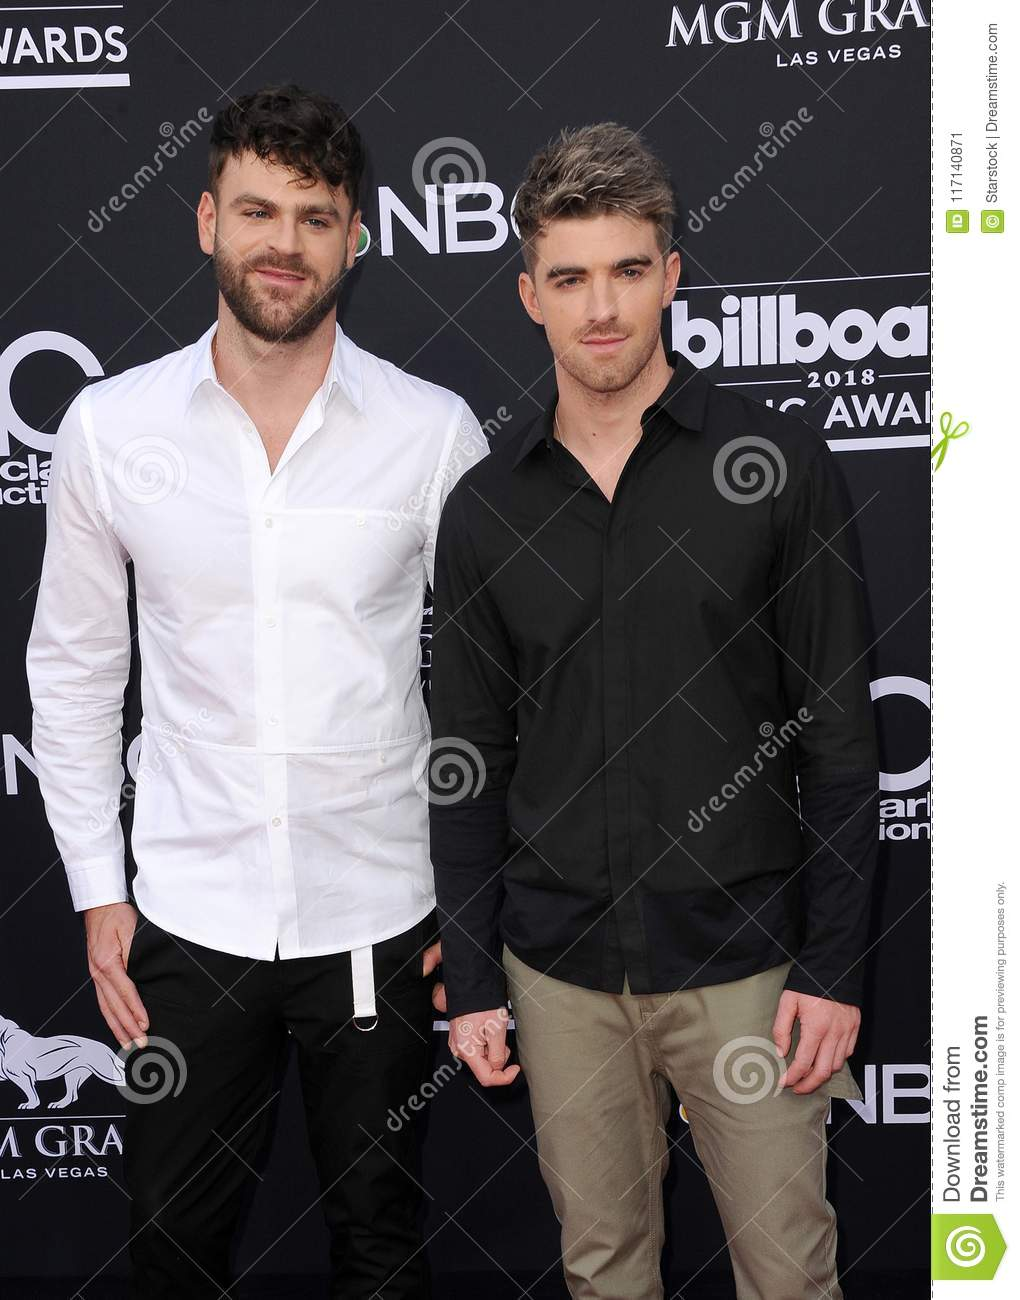 Alex Pall e Andrew Taggart dos Chainsmokers